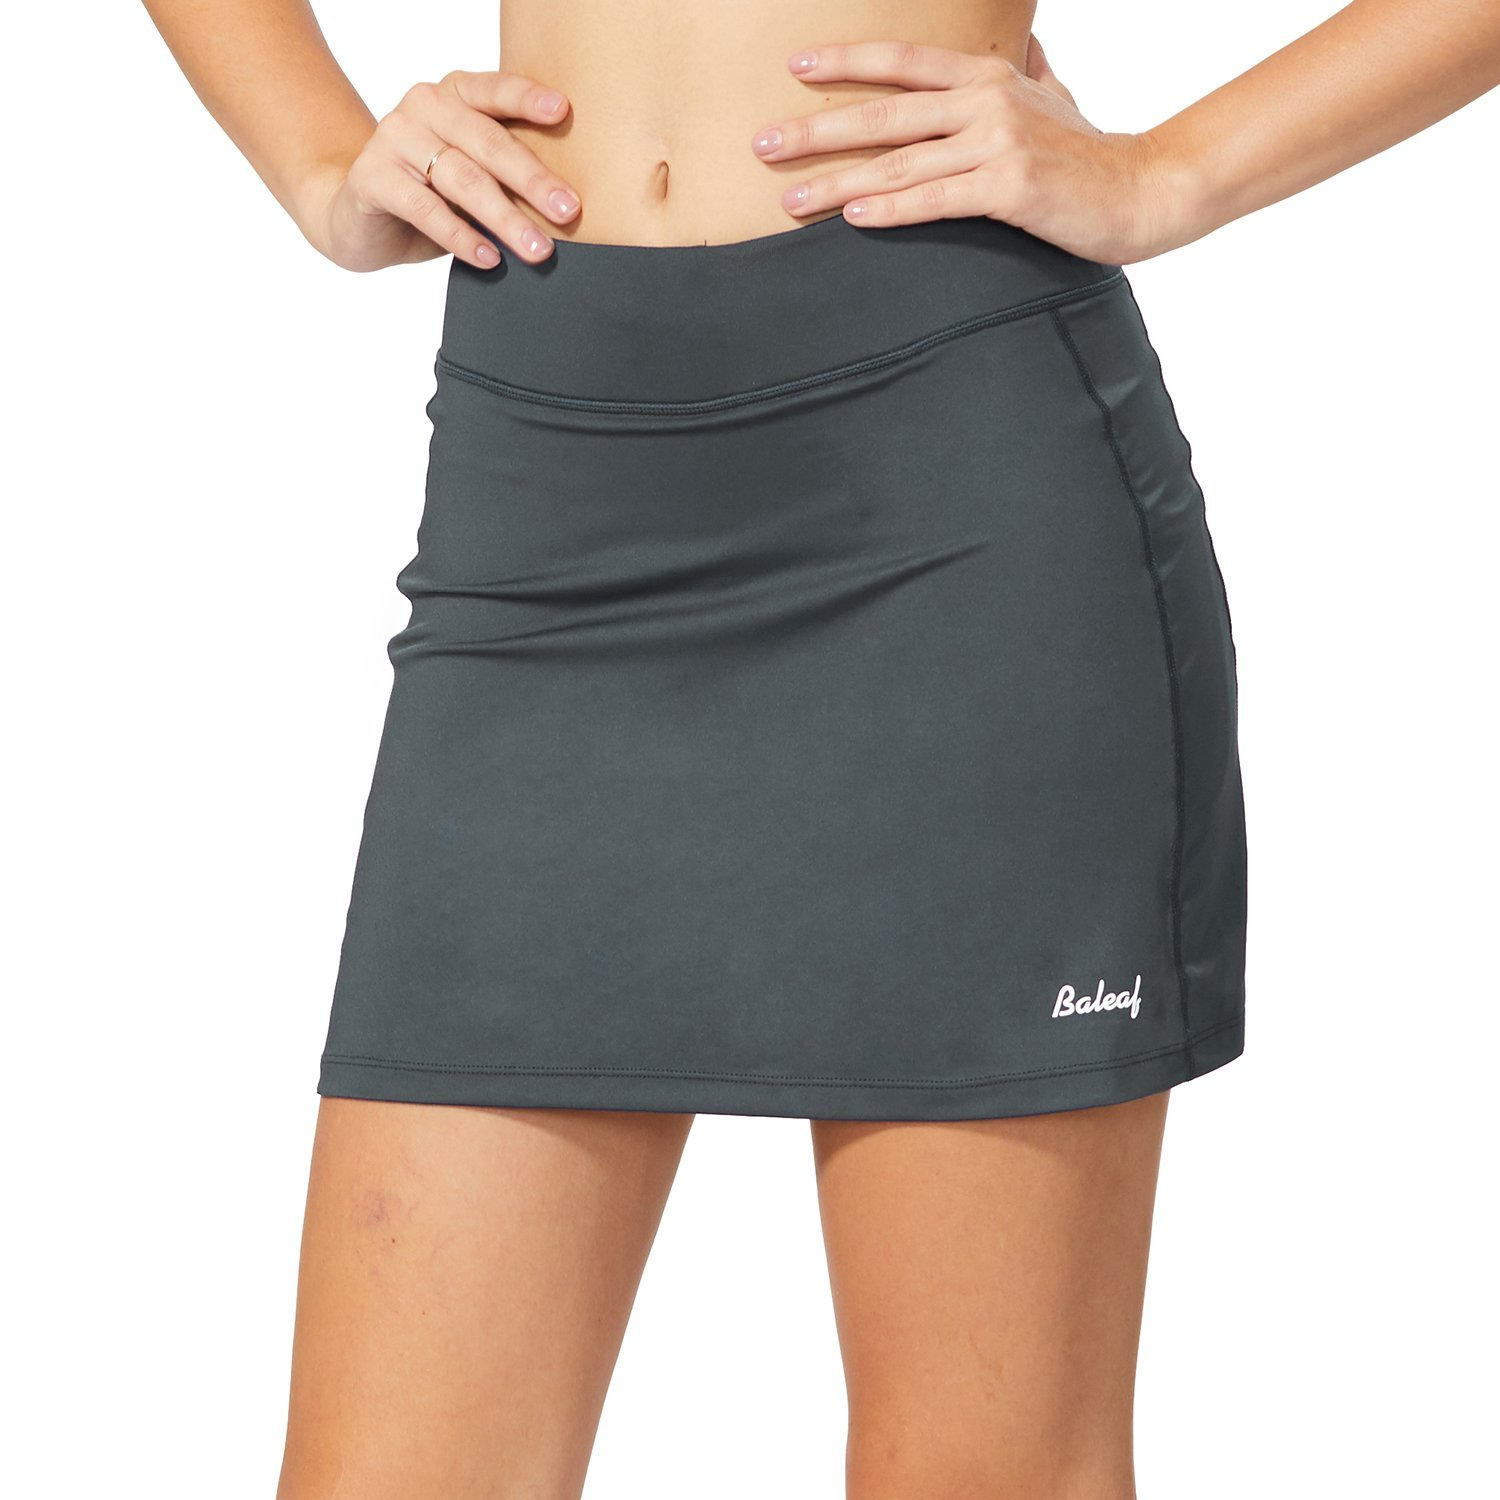 Baleaf Women's Active Athletic Skort Lightweight Skirt with Pockets for Running Tennis Golf Workout Gray Size XS